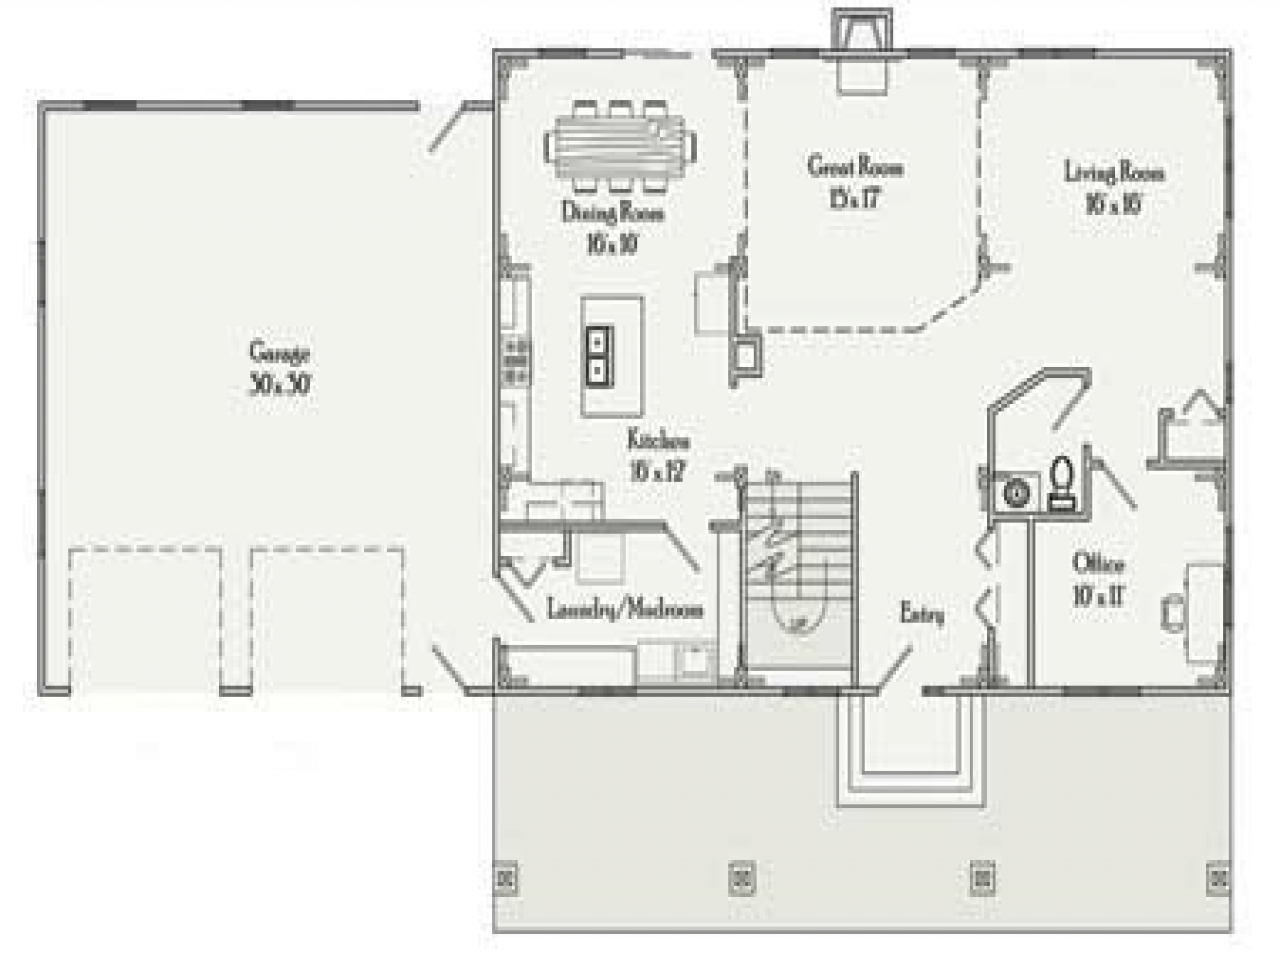 Rectangular house plans 3 bedroom 2 bath simple for Floor plans 3 bedroom 2 bath